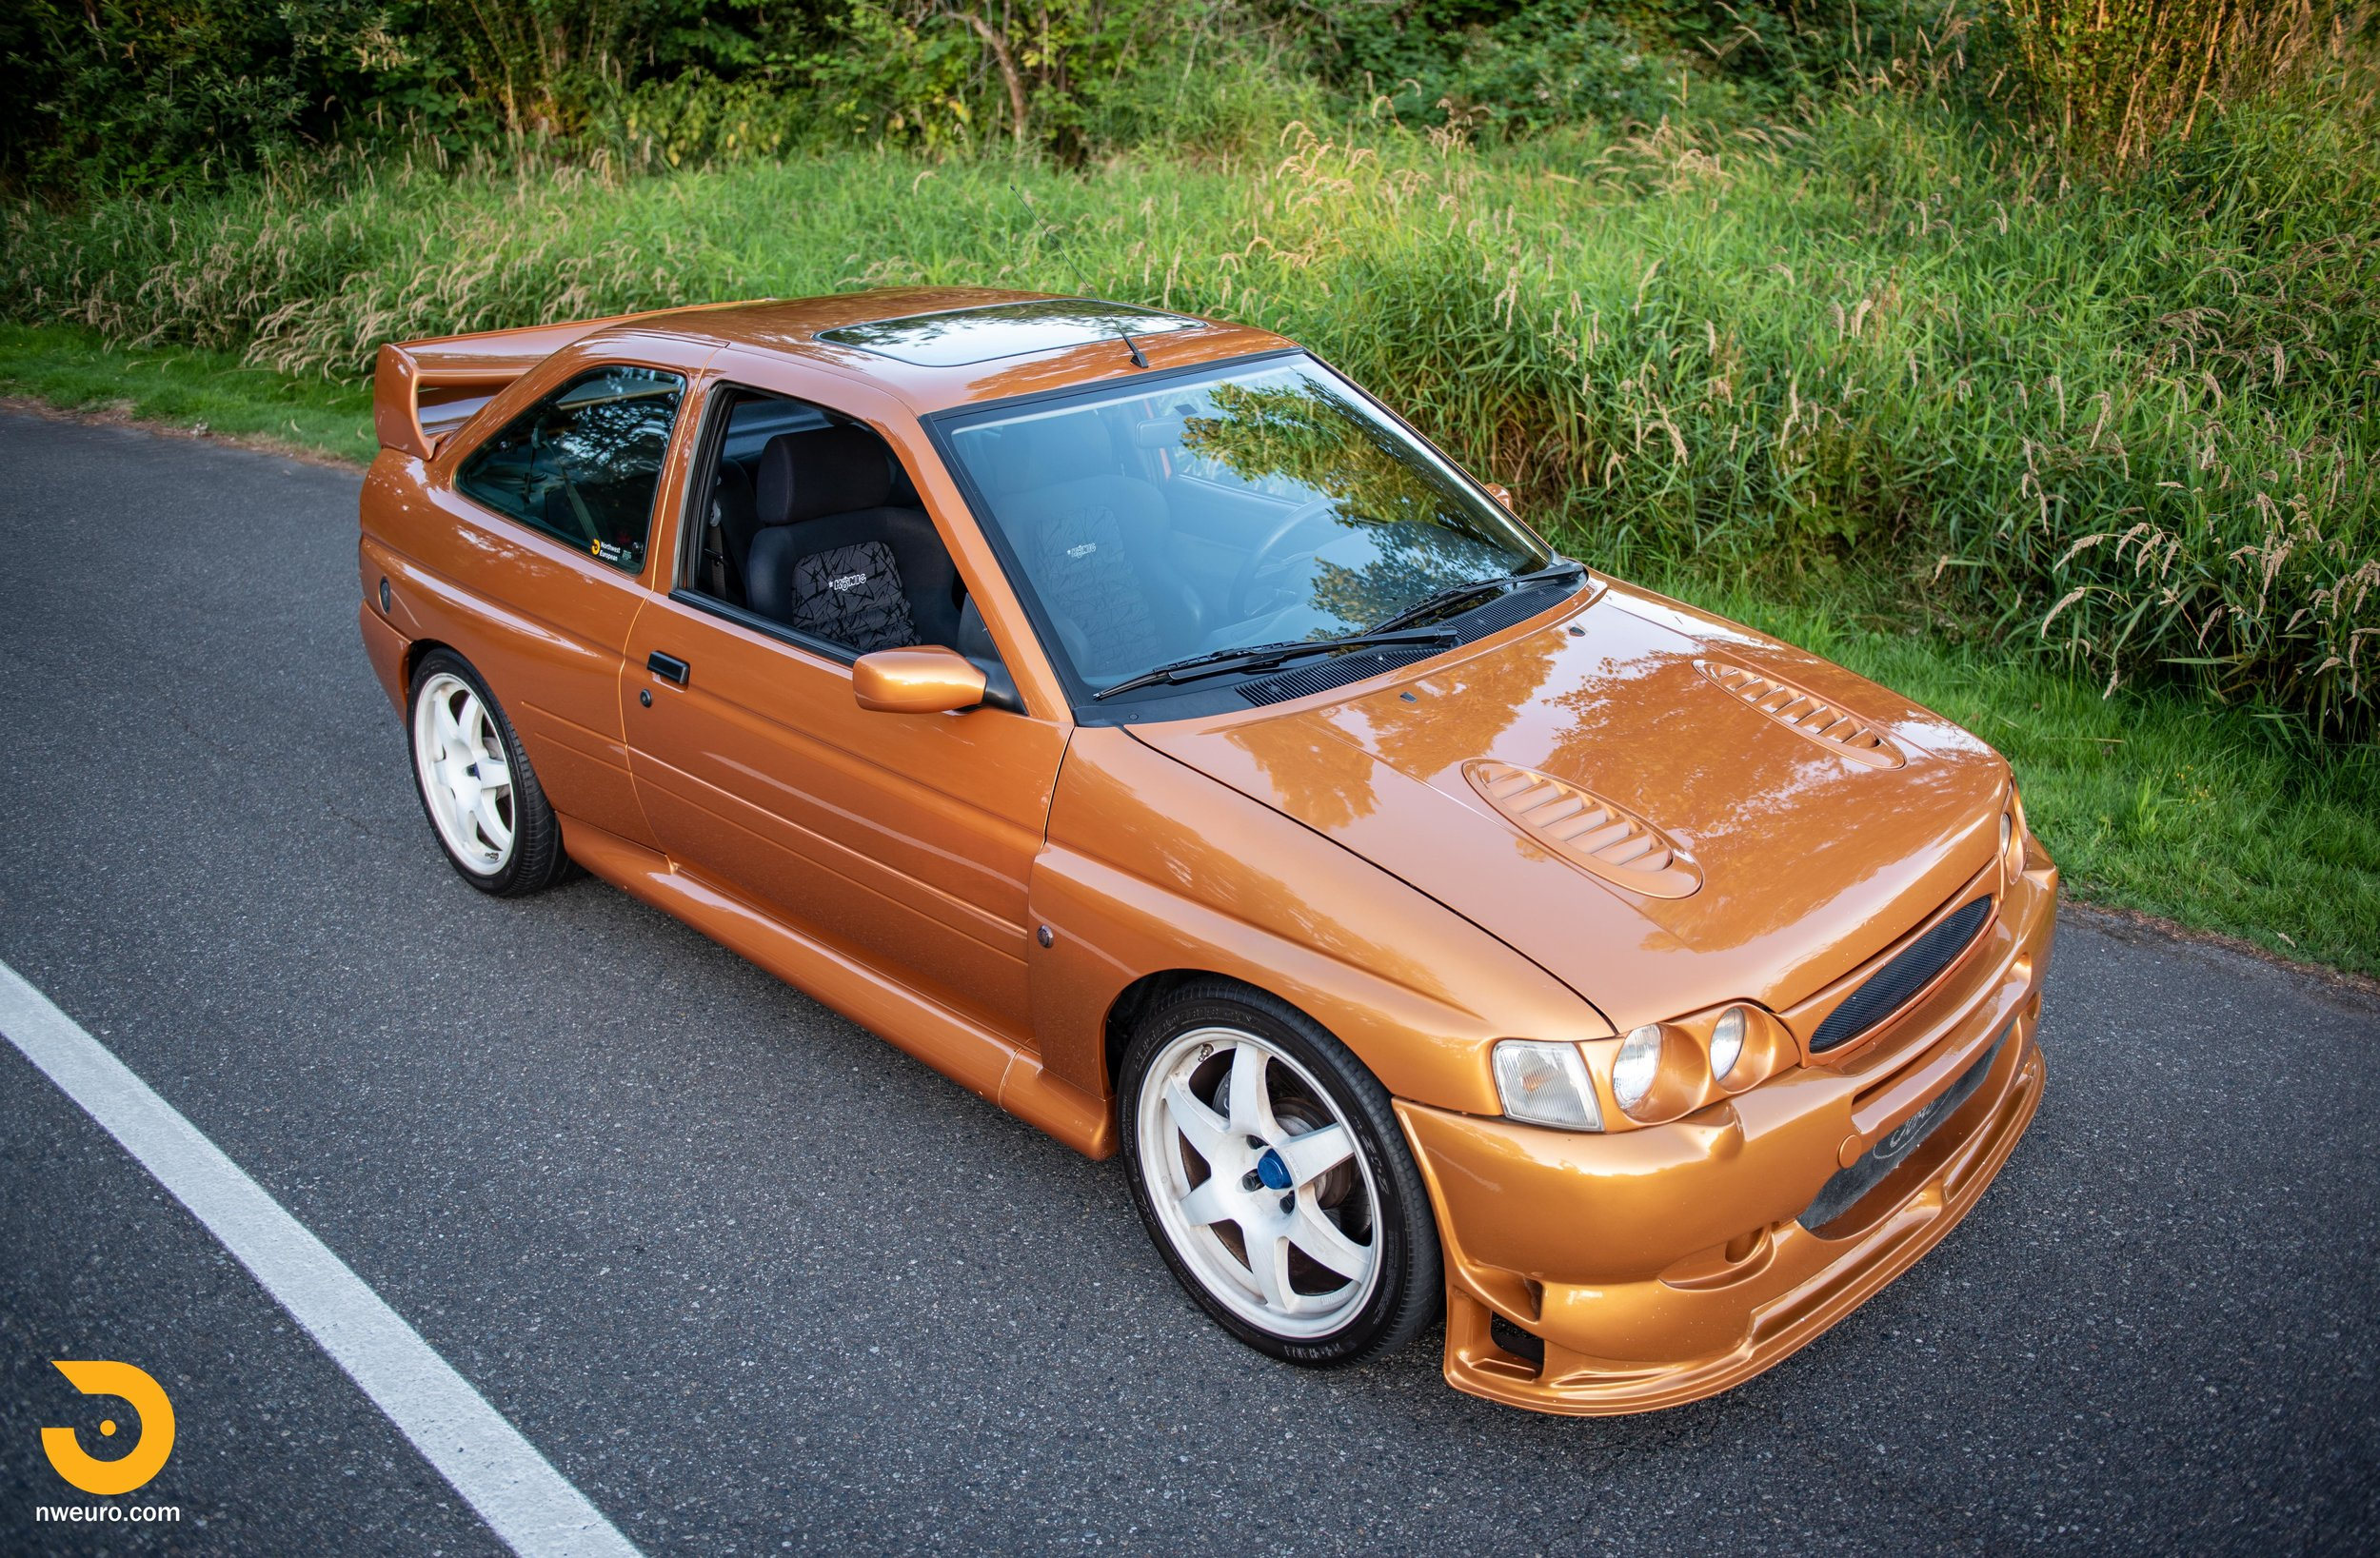 1995 Ford Escort Cosworth RS Gold-19.jpg